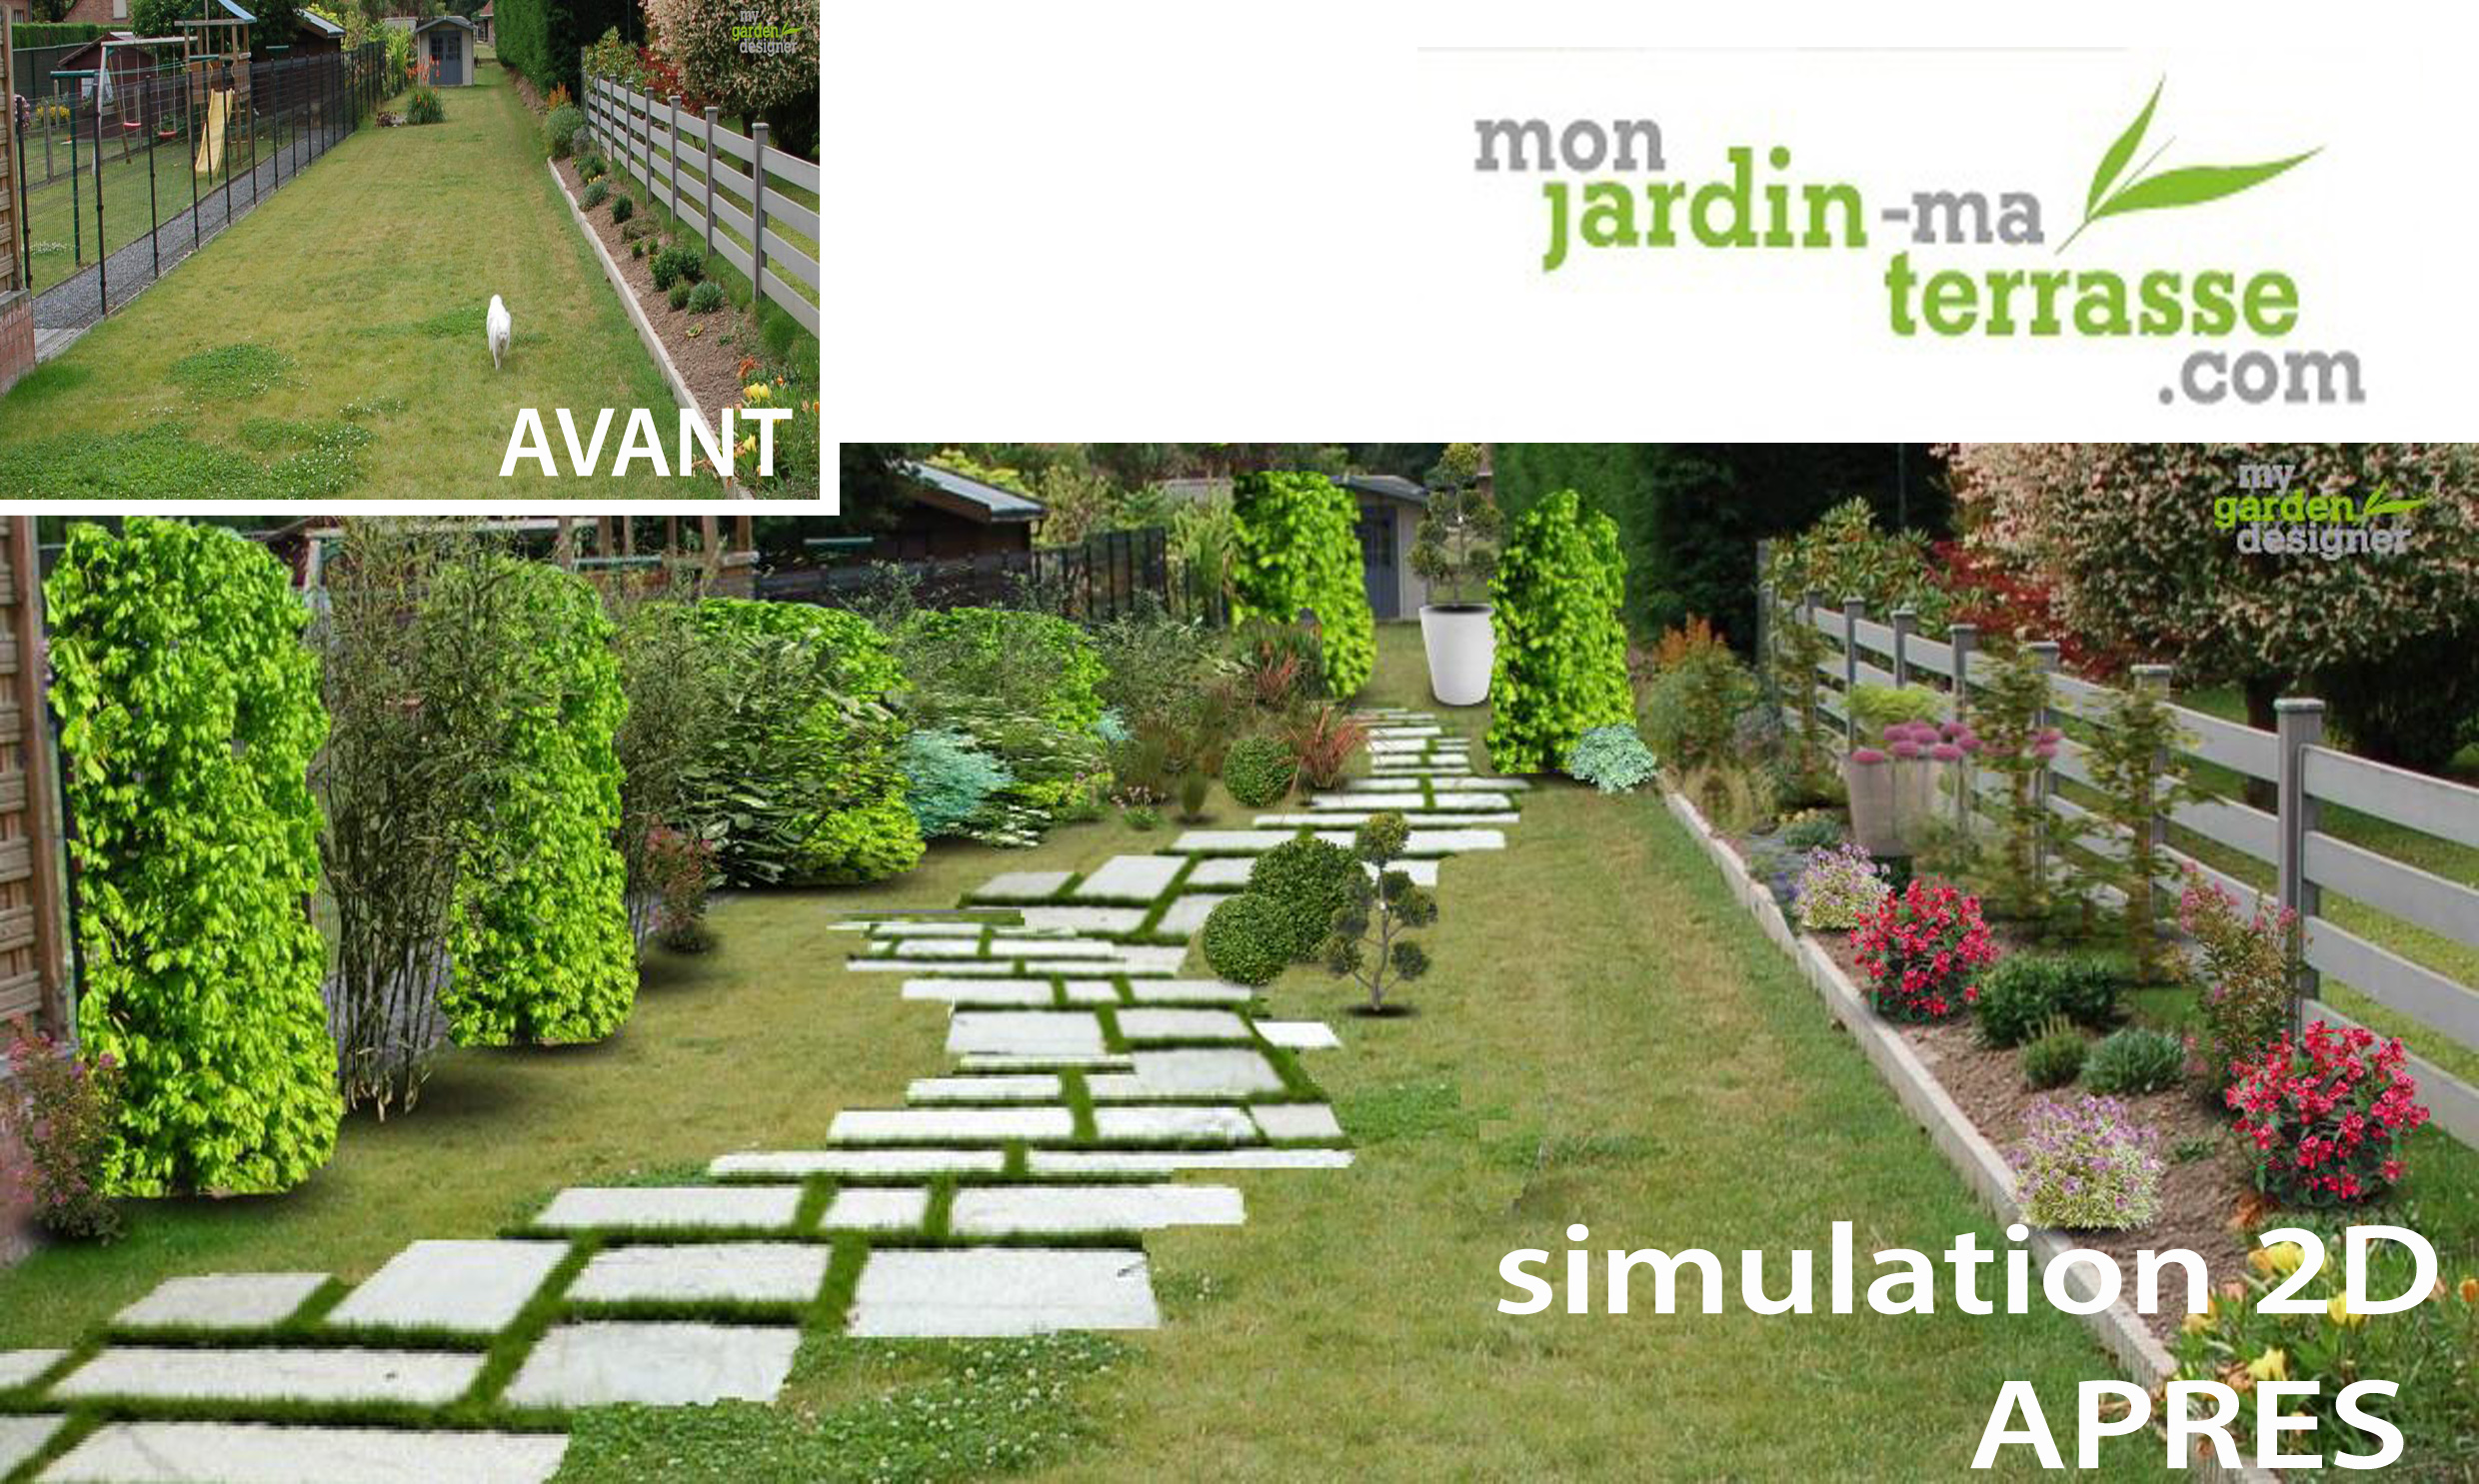 Comment am nager son jardin en longueur monjardin for Comment amenager son jardin exterieur